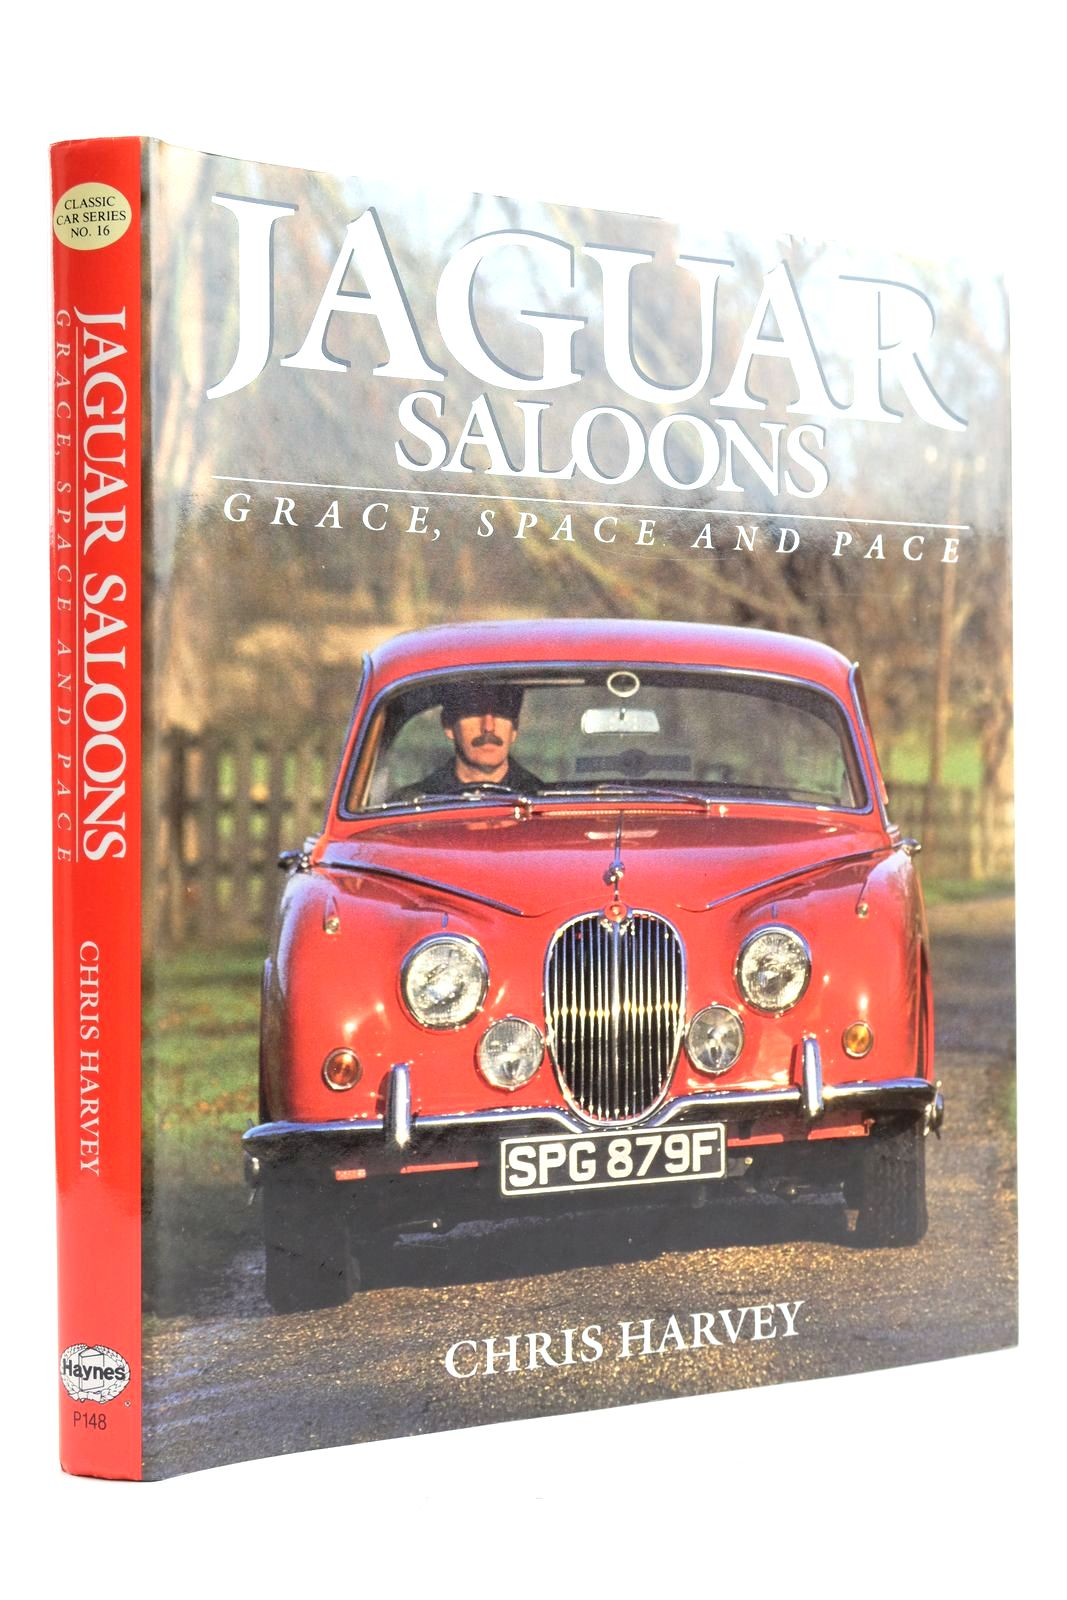 Photo of JAGUAR SALOONS GRACE, SPACE AND PACE- Stock Number: 2133098